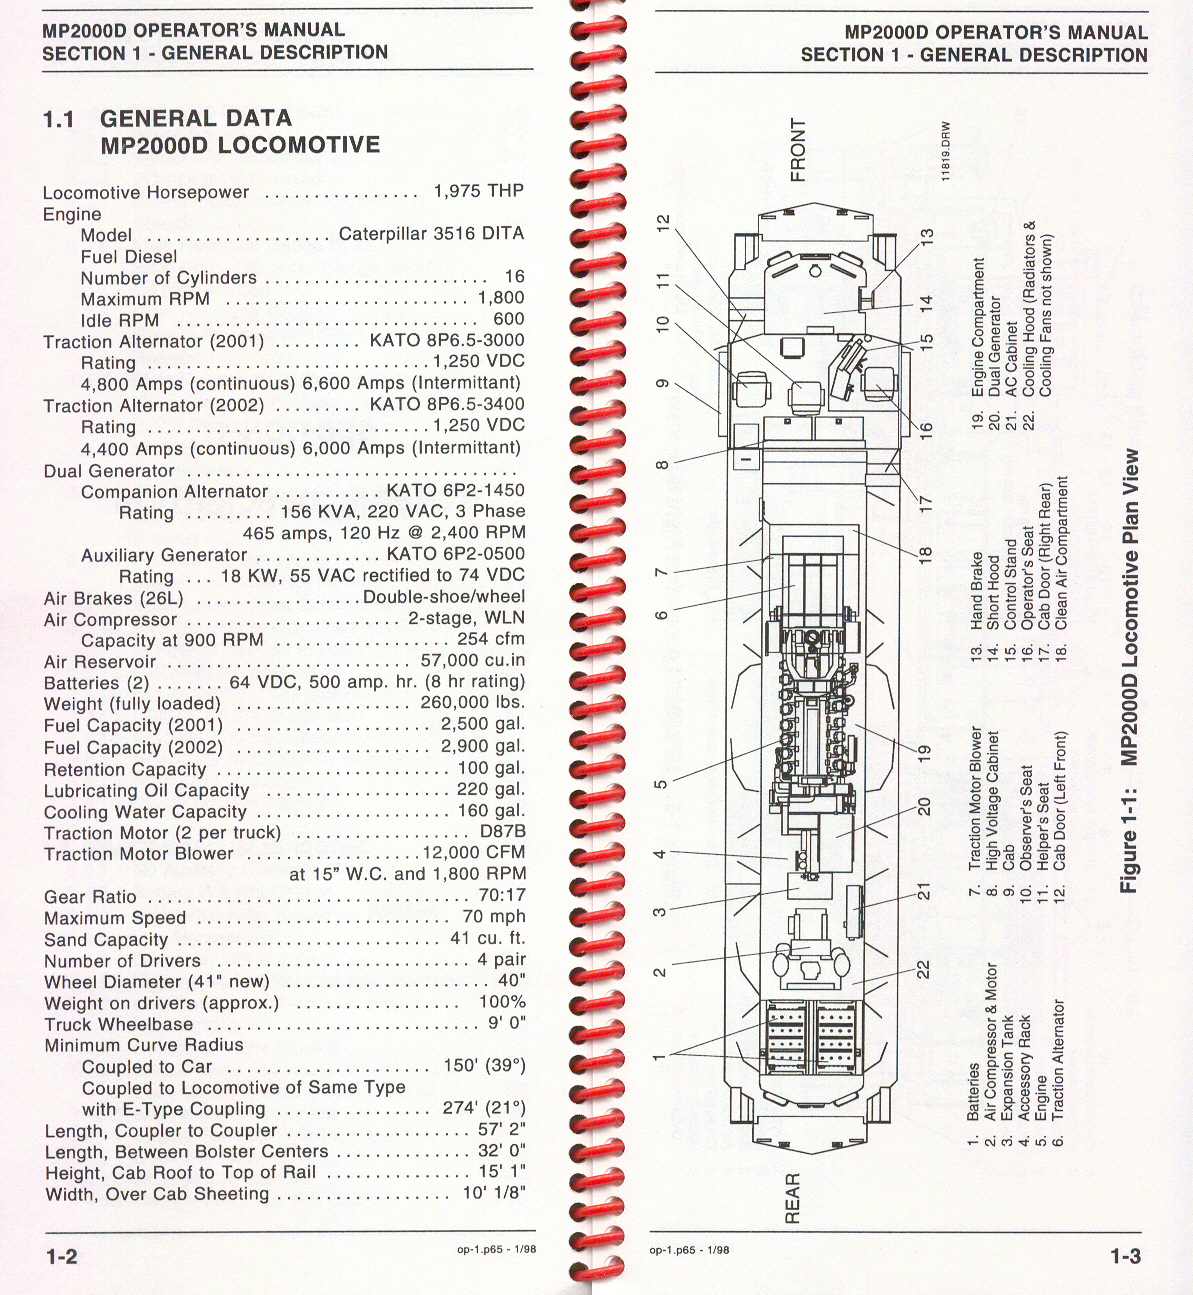 A scan of the MP2000C's operators manual